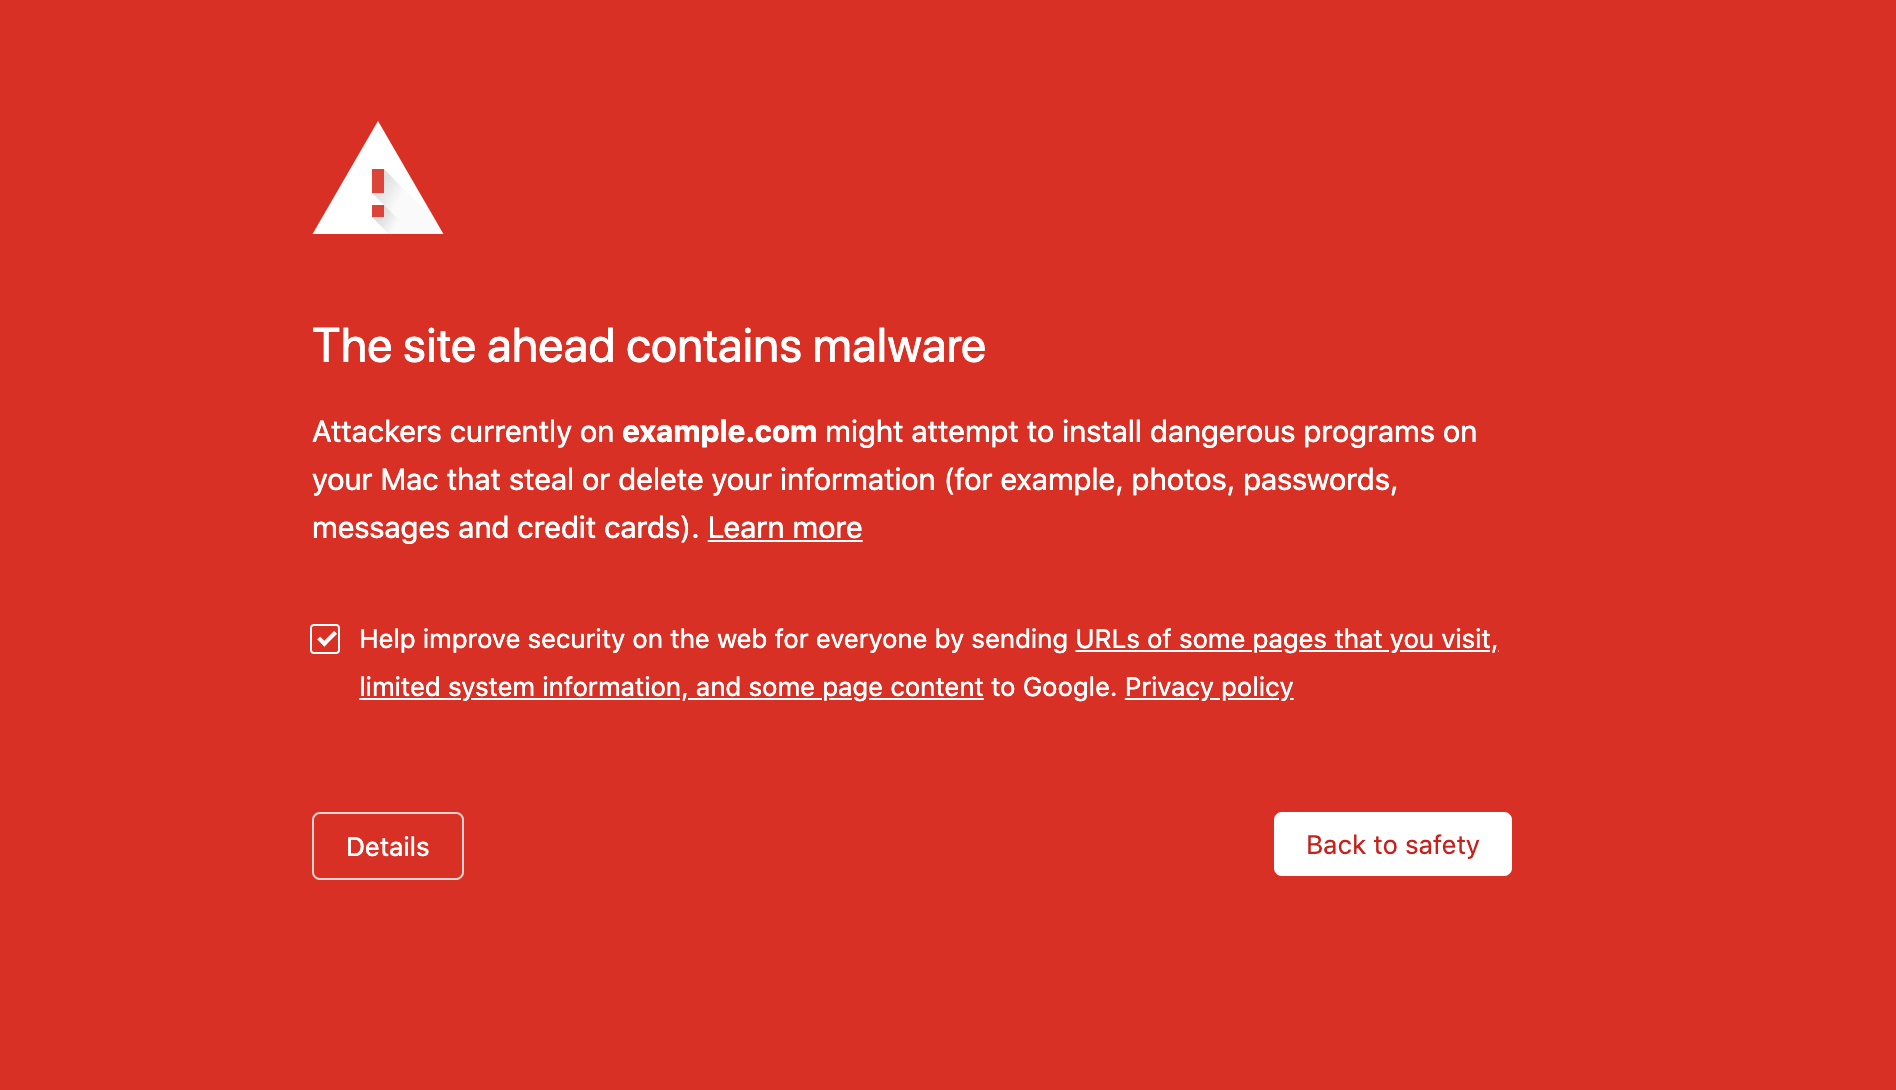 A blacklist malware warning in Google Chrome.